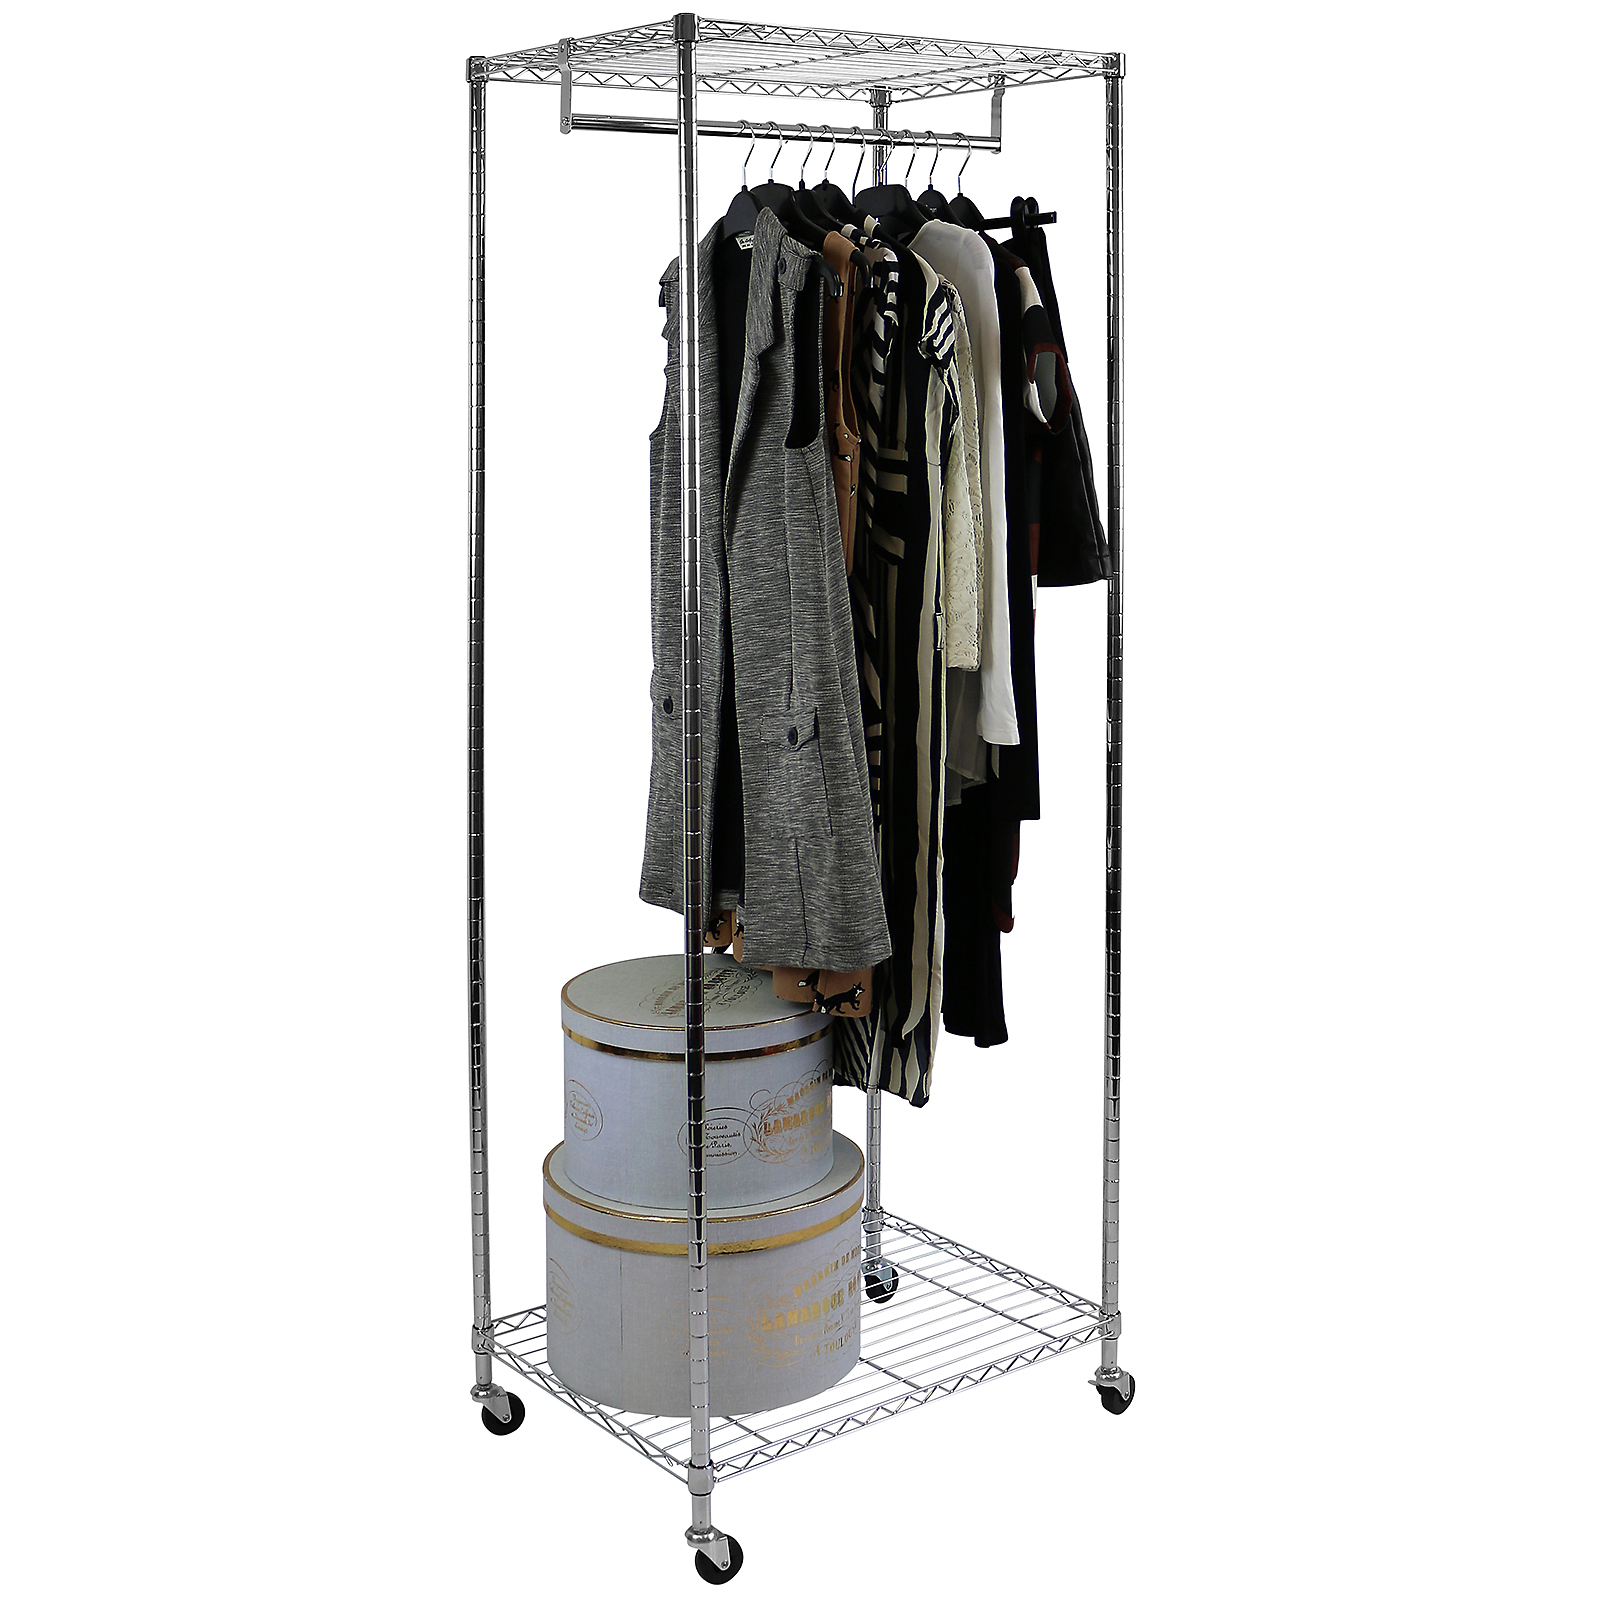 hanging image illustration closet rack vector wardrobe clothes display stock